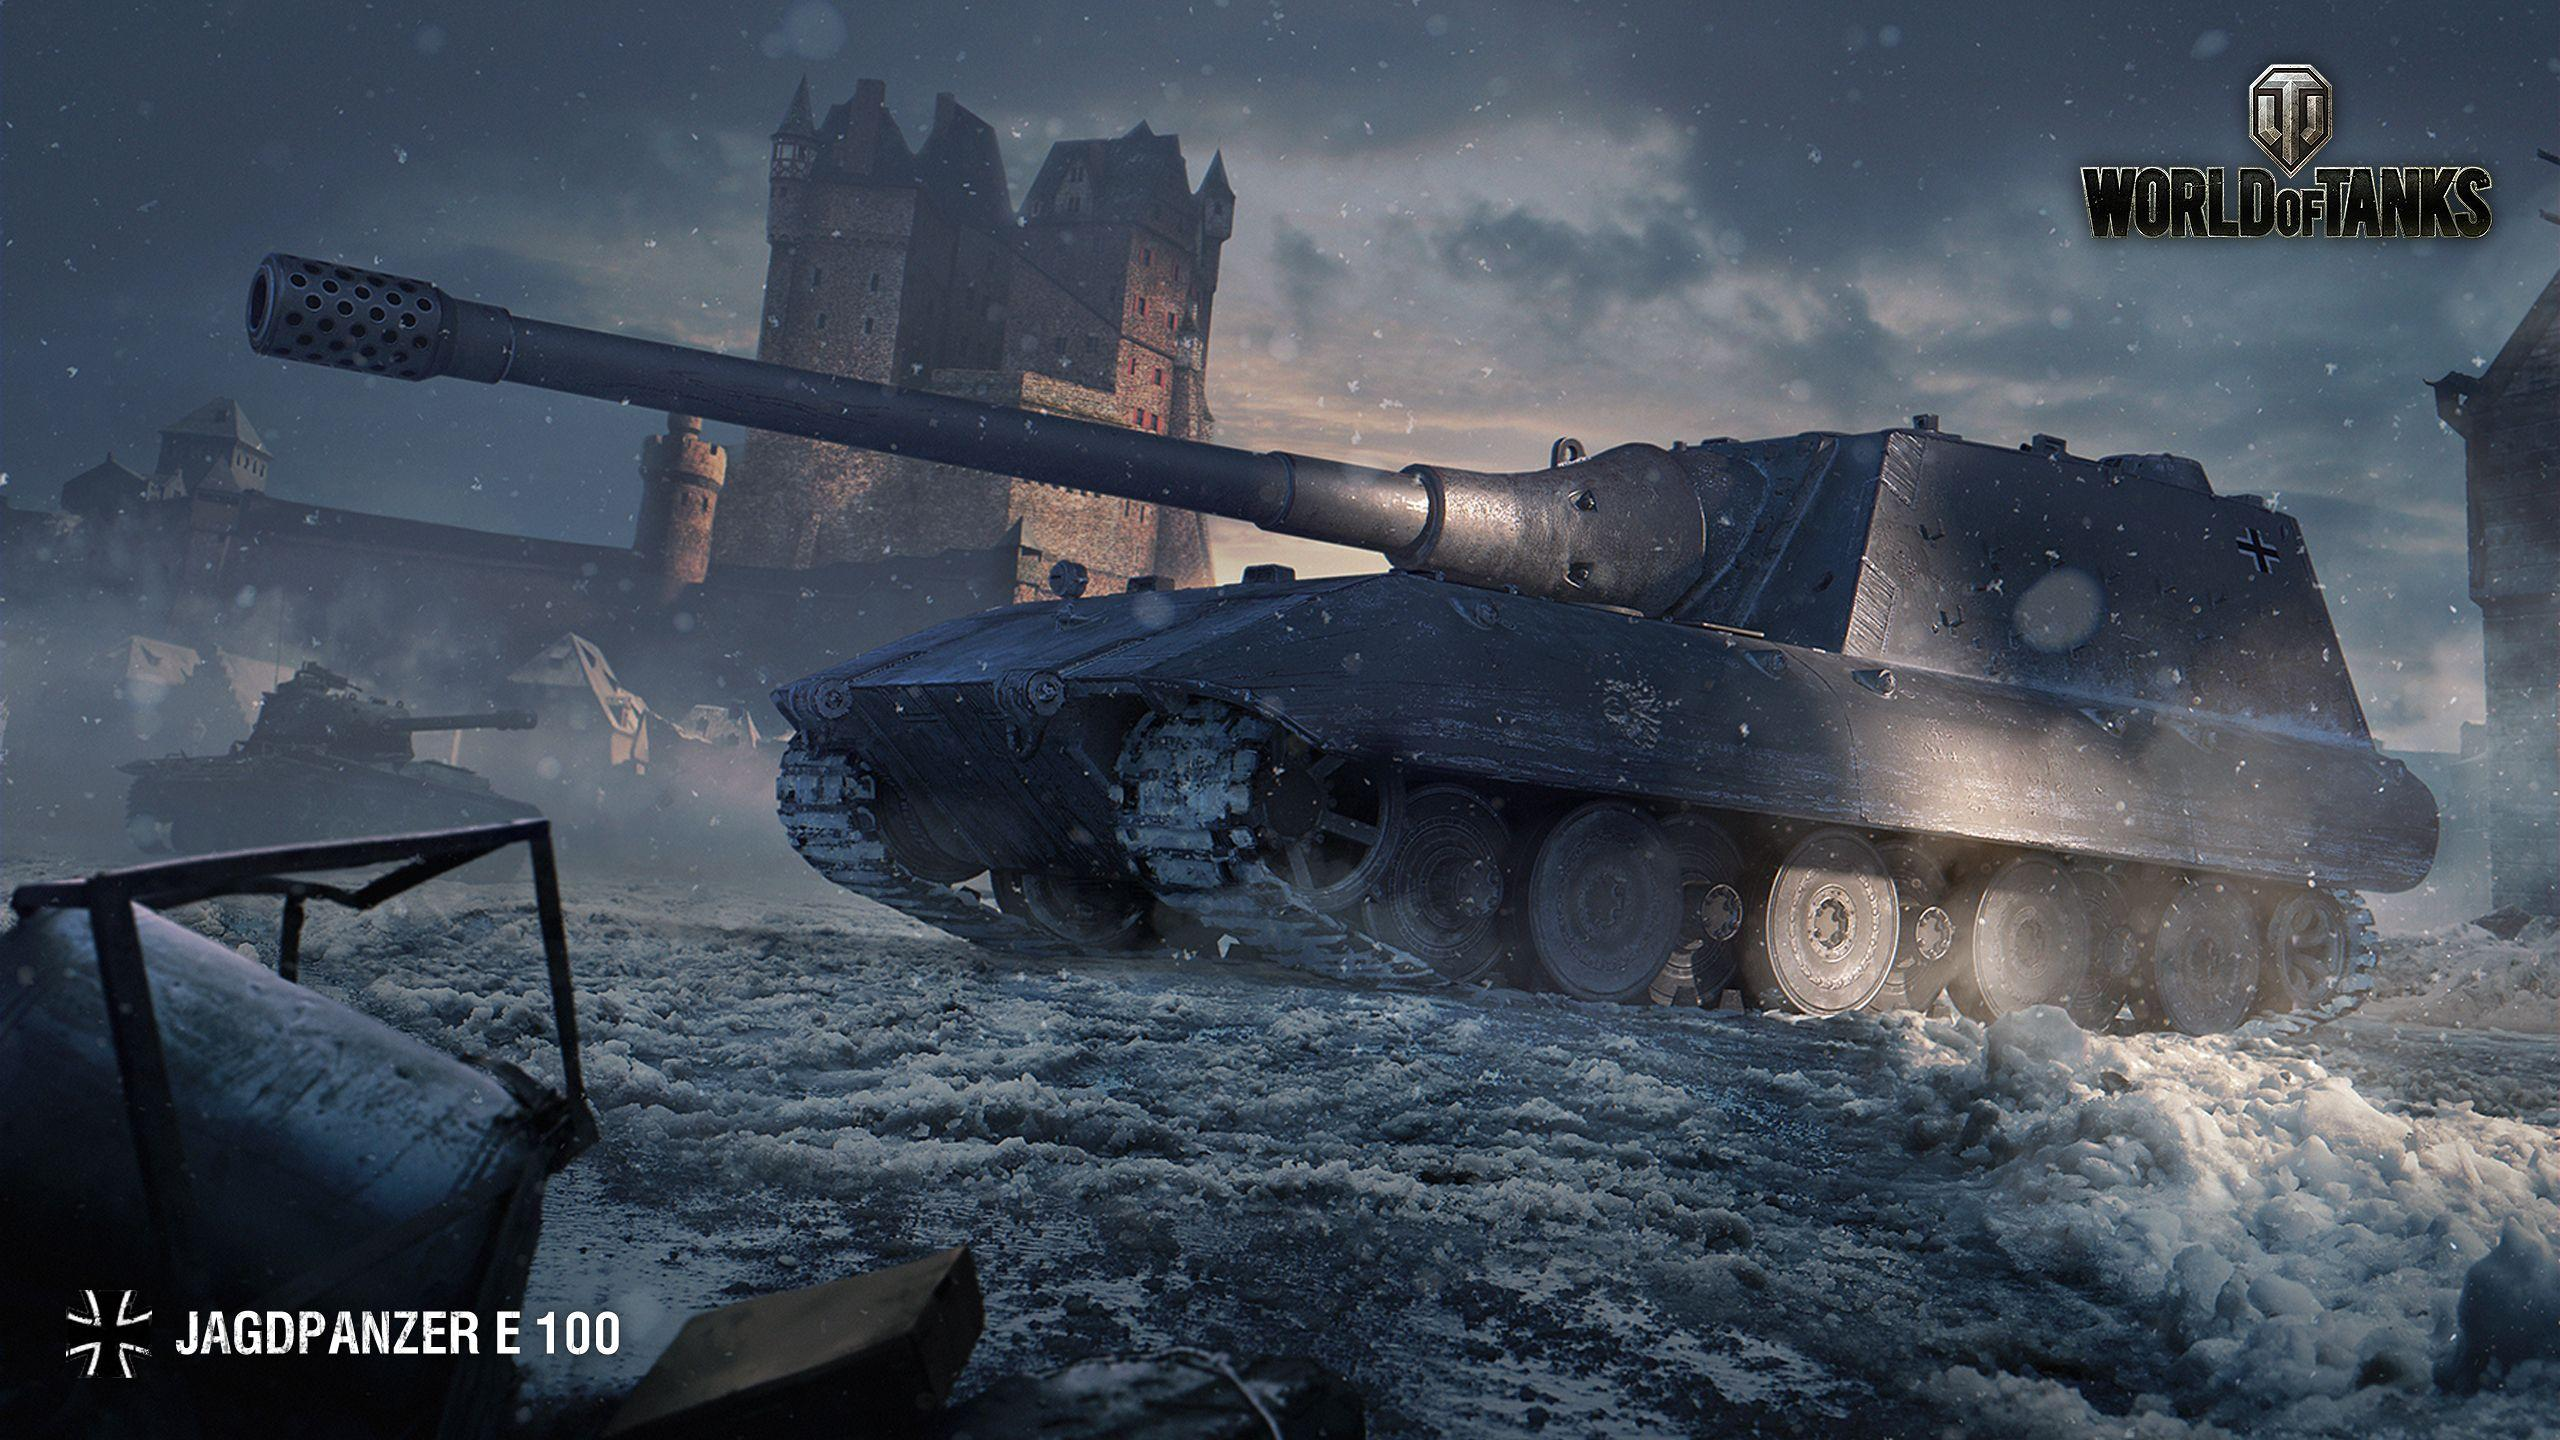 World Of Tanks Wallpapers Hd Wallpaper Cave